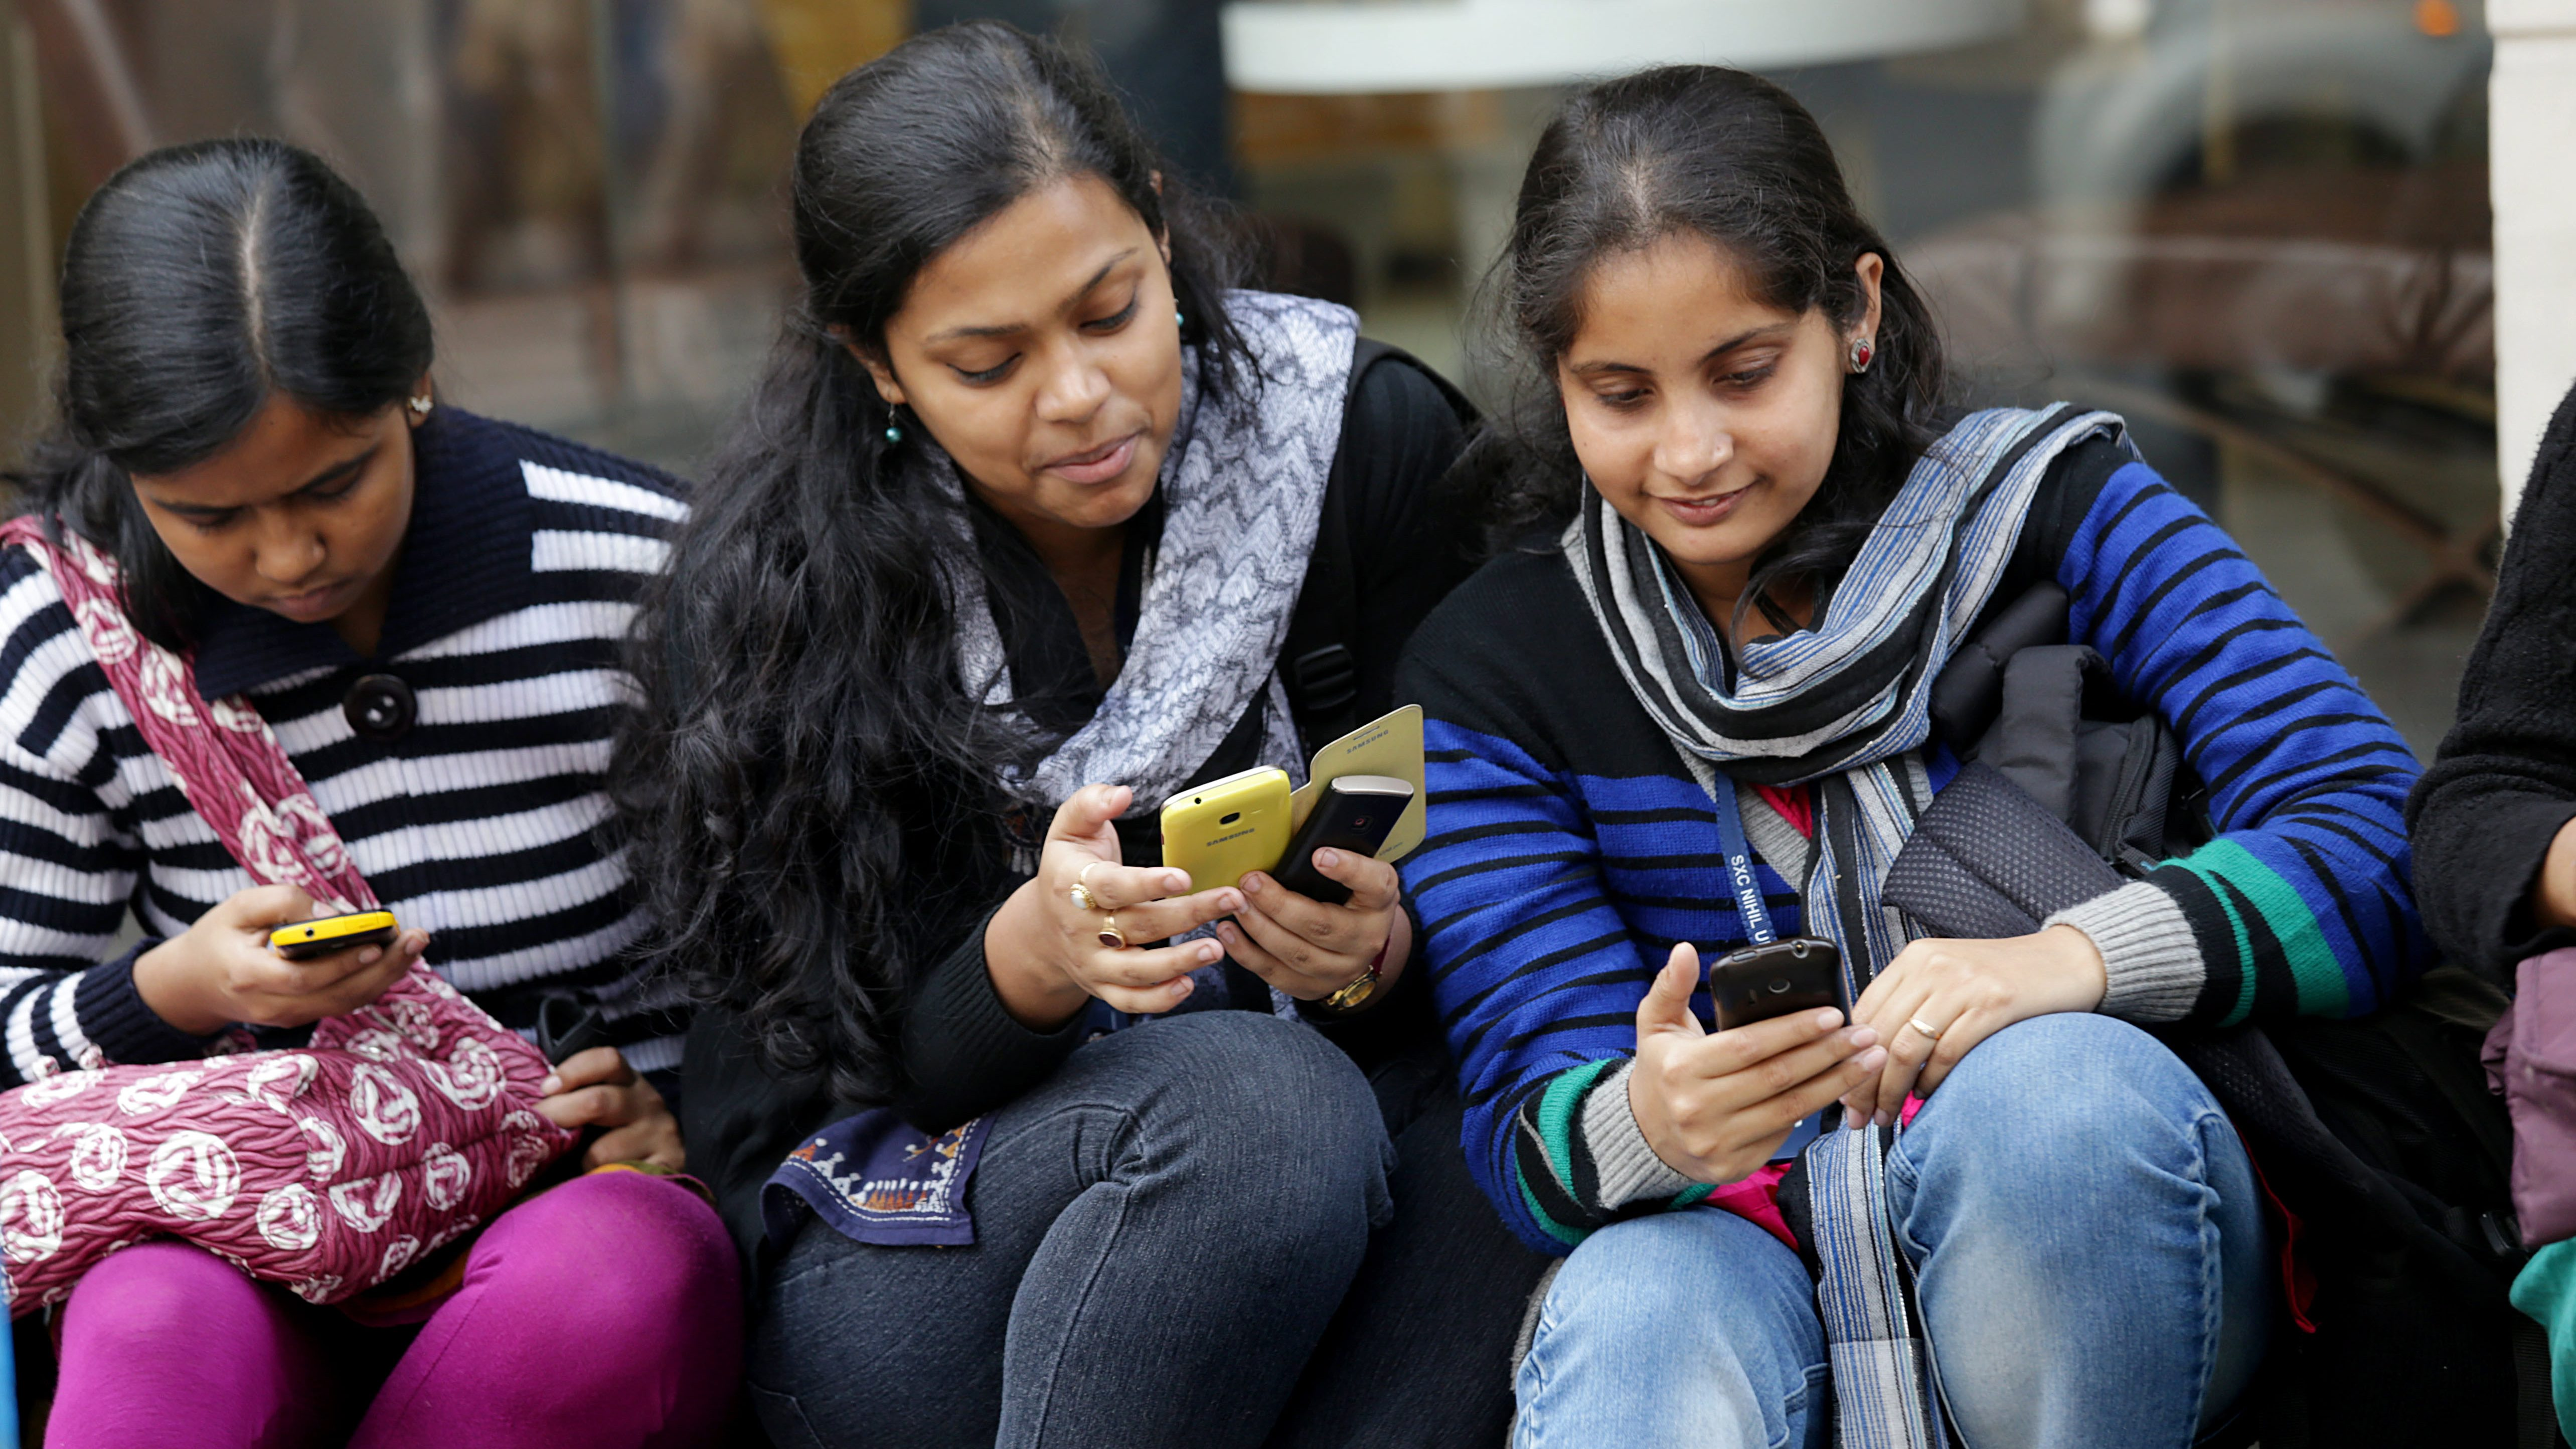 Indian students browse the internet with their smartphone.